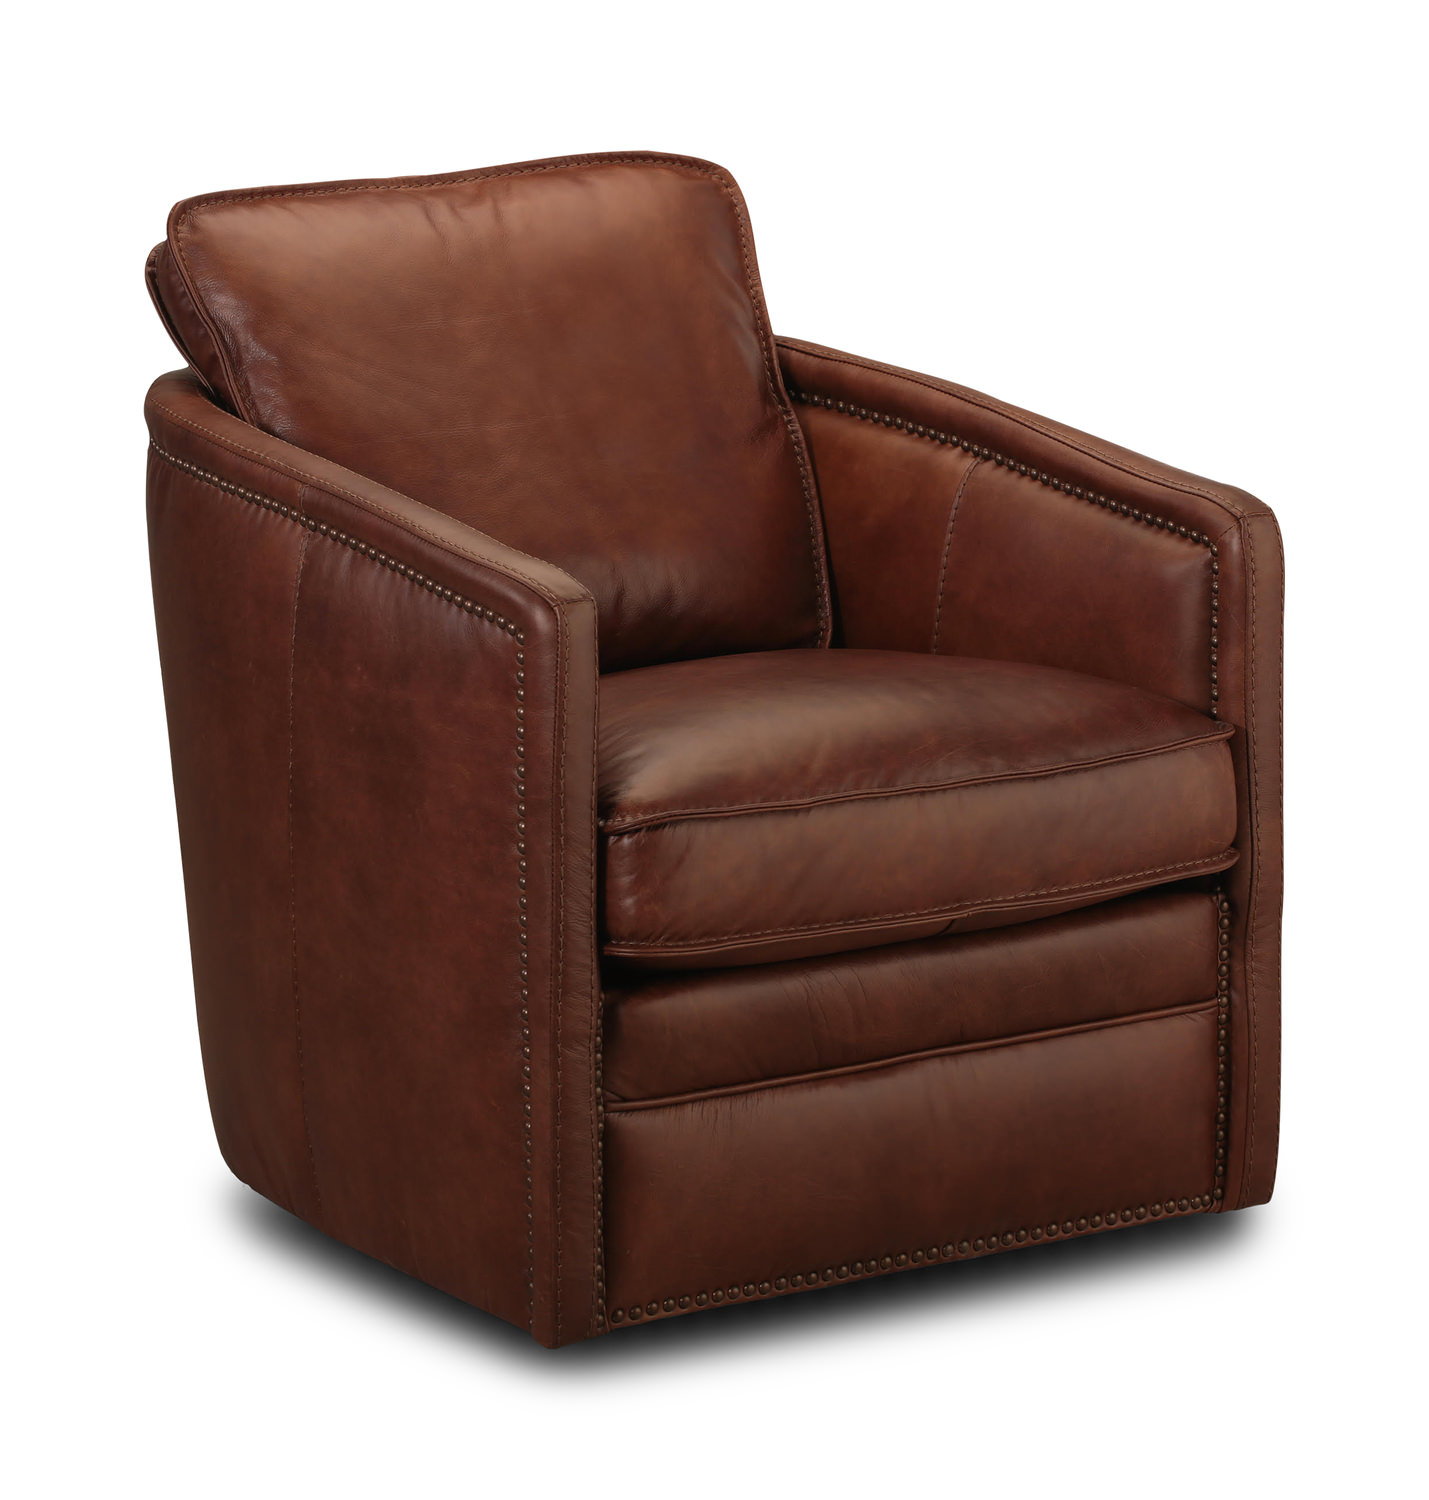 Pivot Leather Swivel Chair By Thomas Cole Hom Furniture